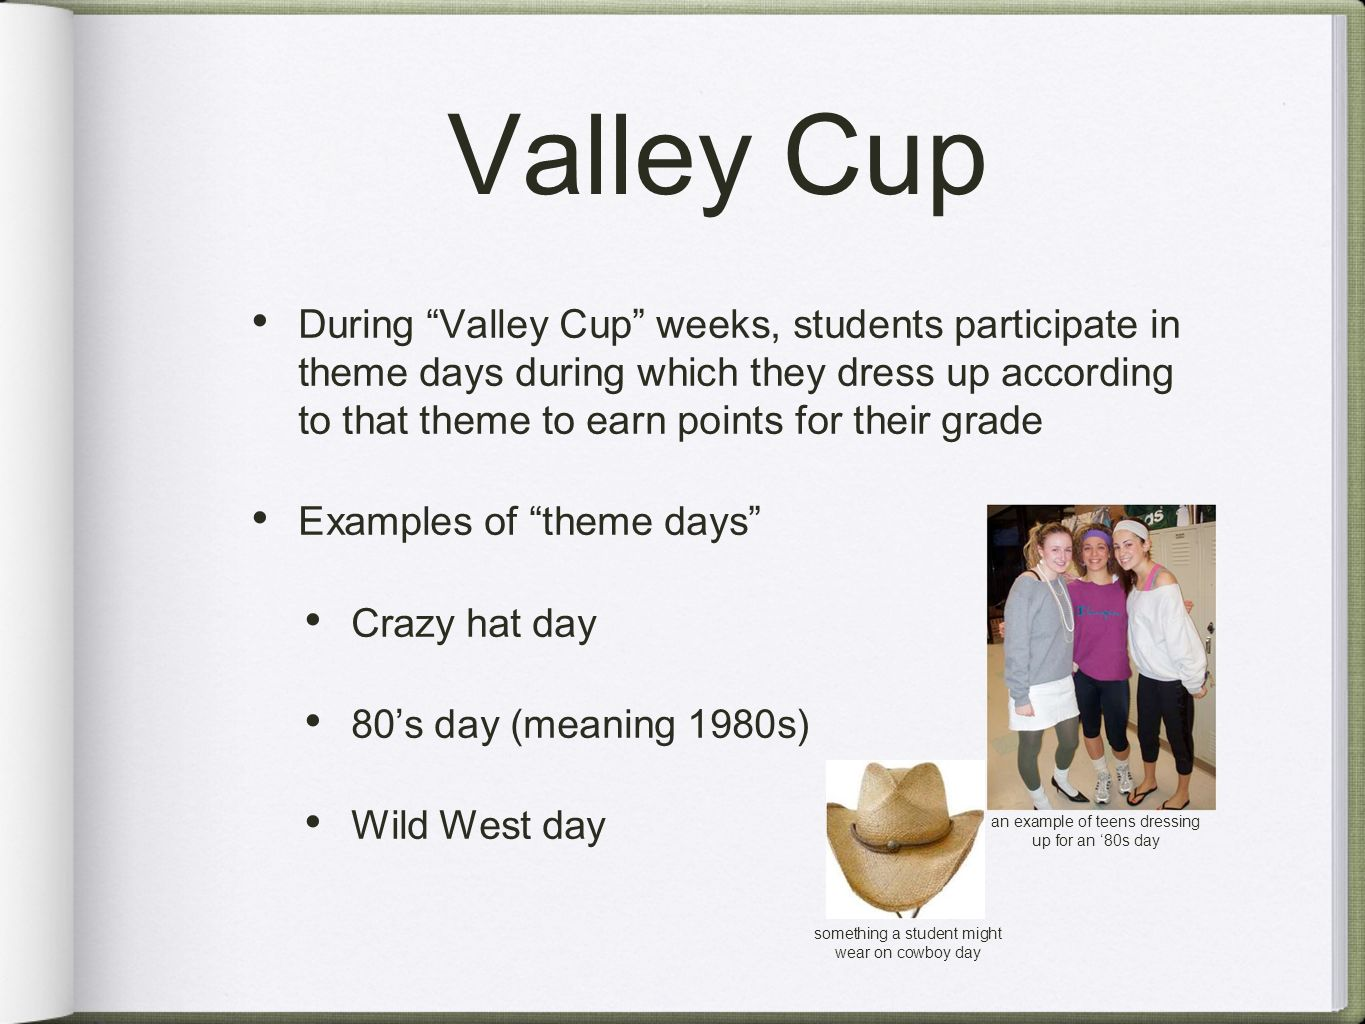 Dress up meaning - 9 Valley